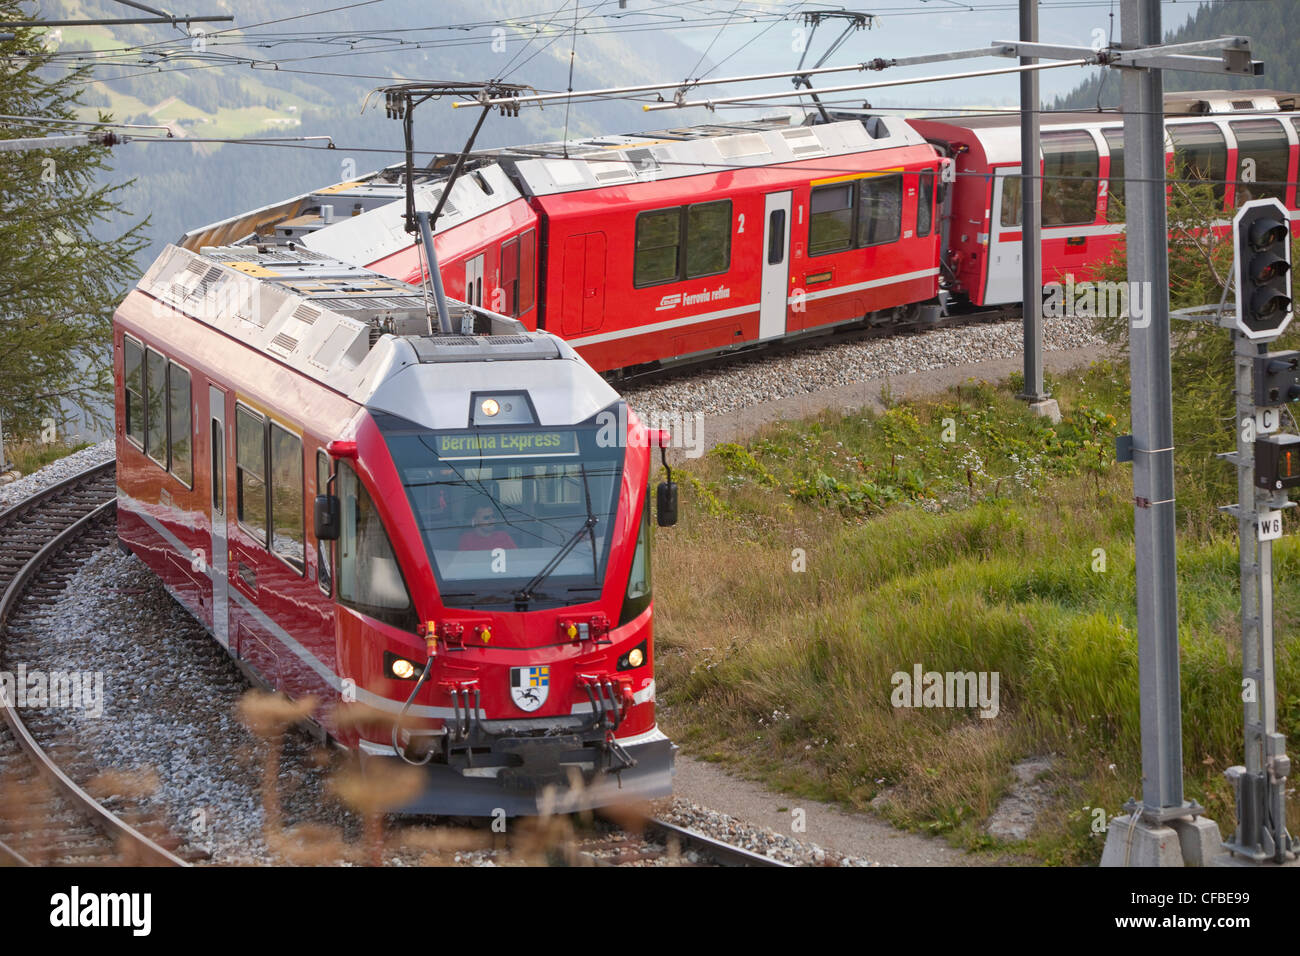 Road, Railway, train, railroad, canton, Graubünden, Grisons, Switzerland, Europe, Rhaetian Railway, Alp Grüm, - Stock Image